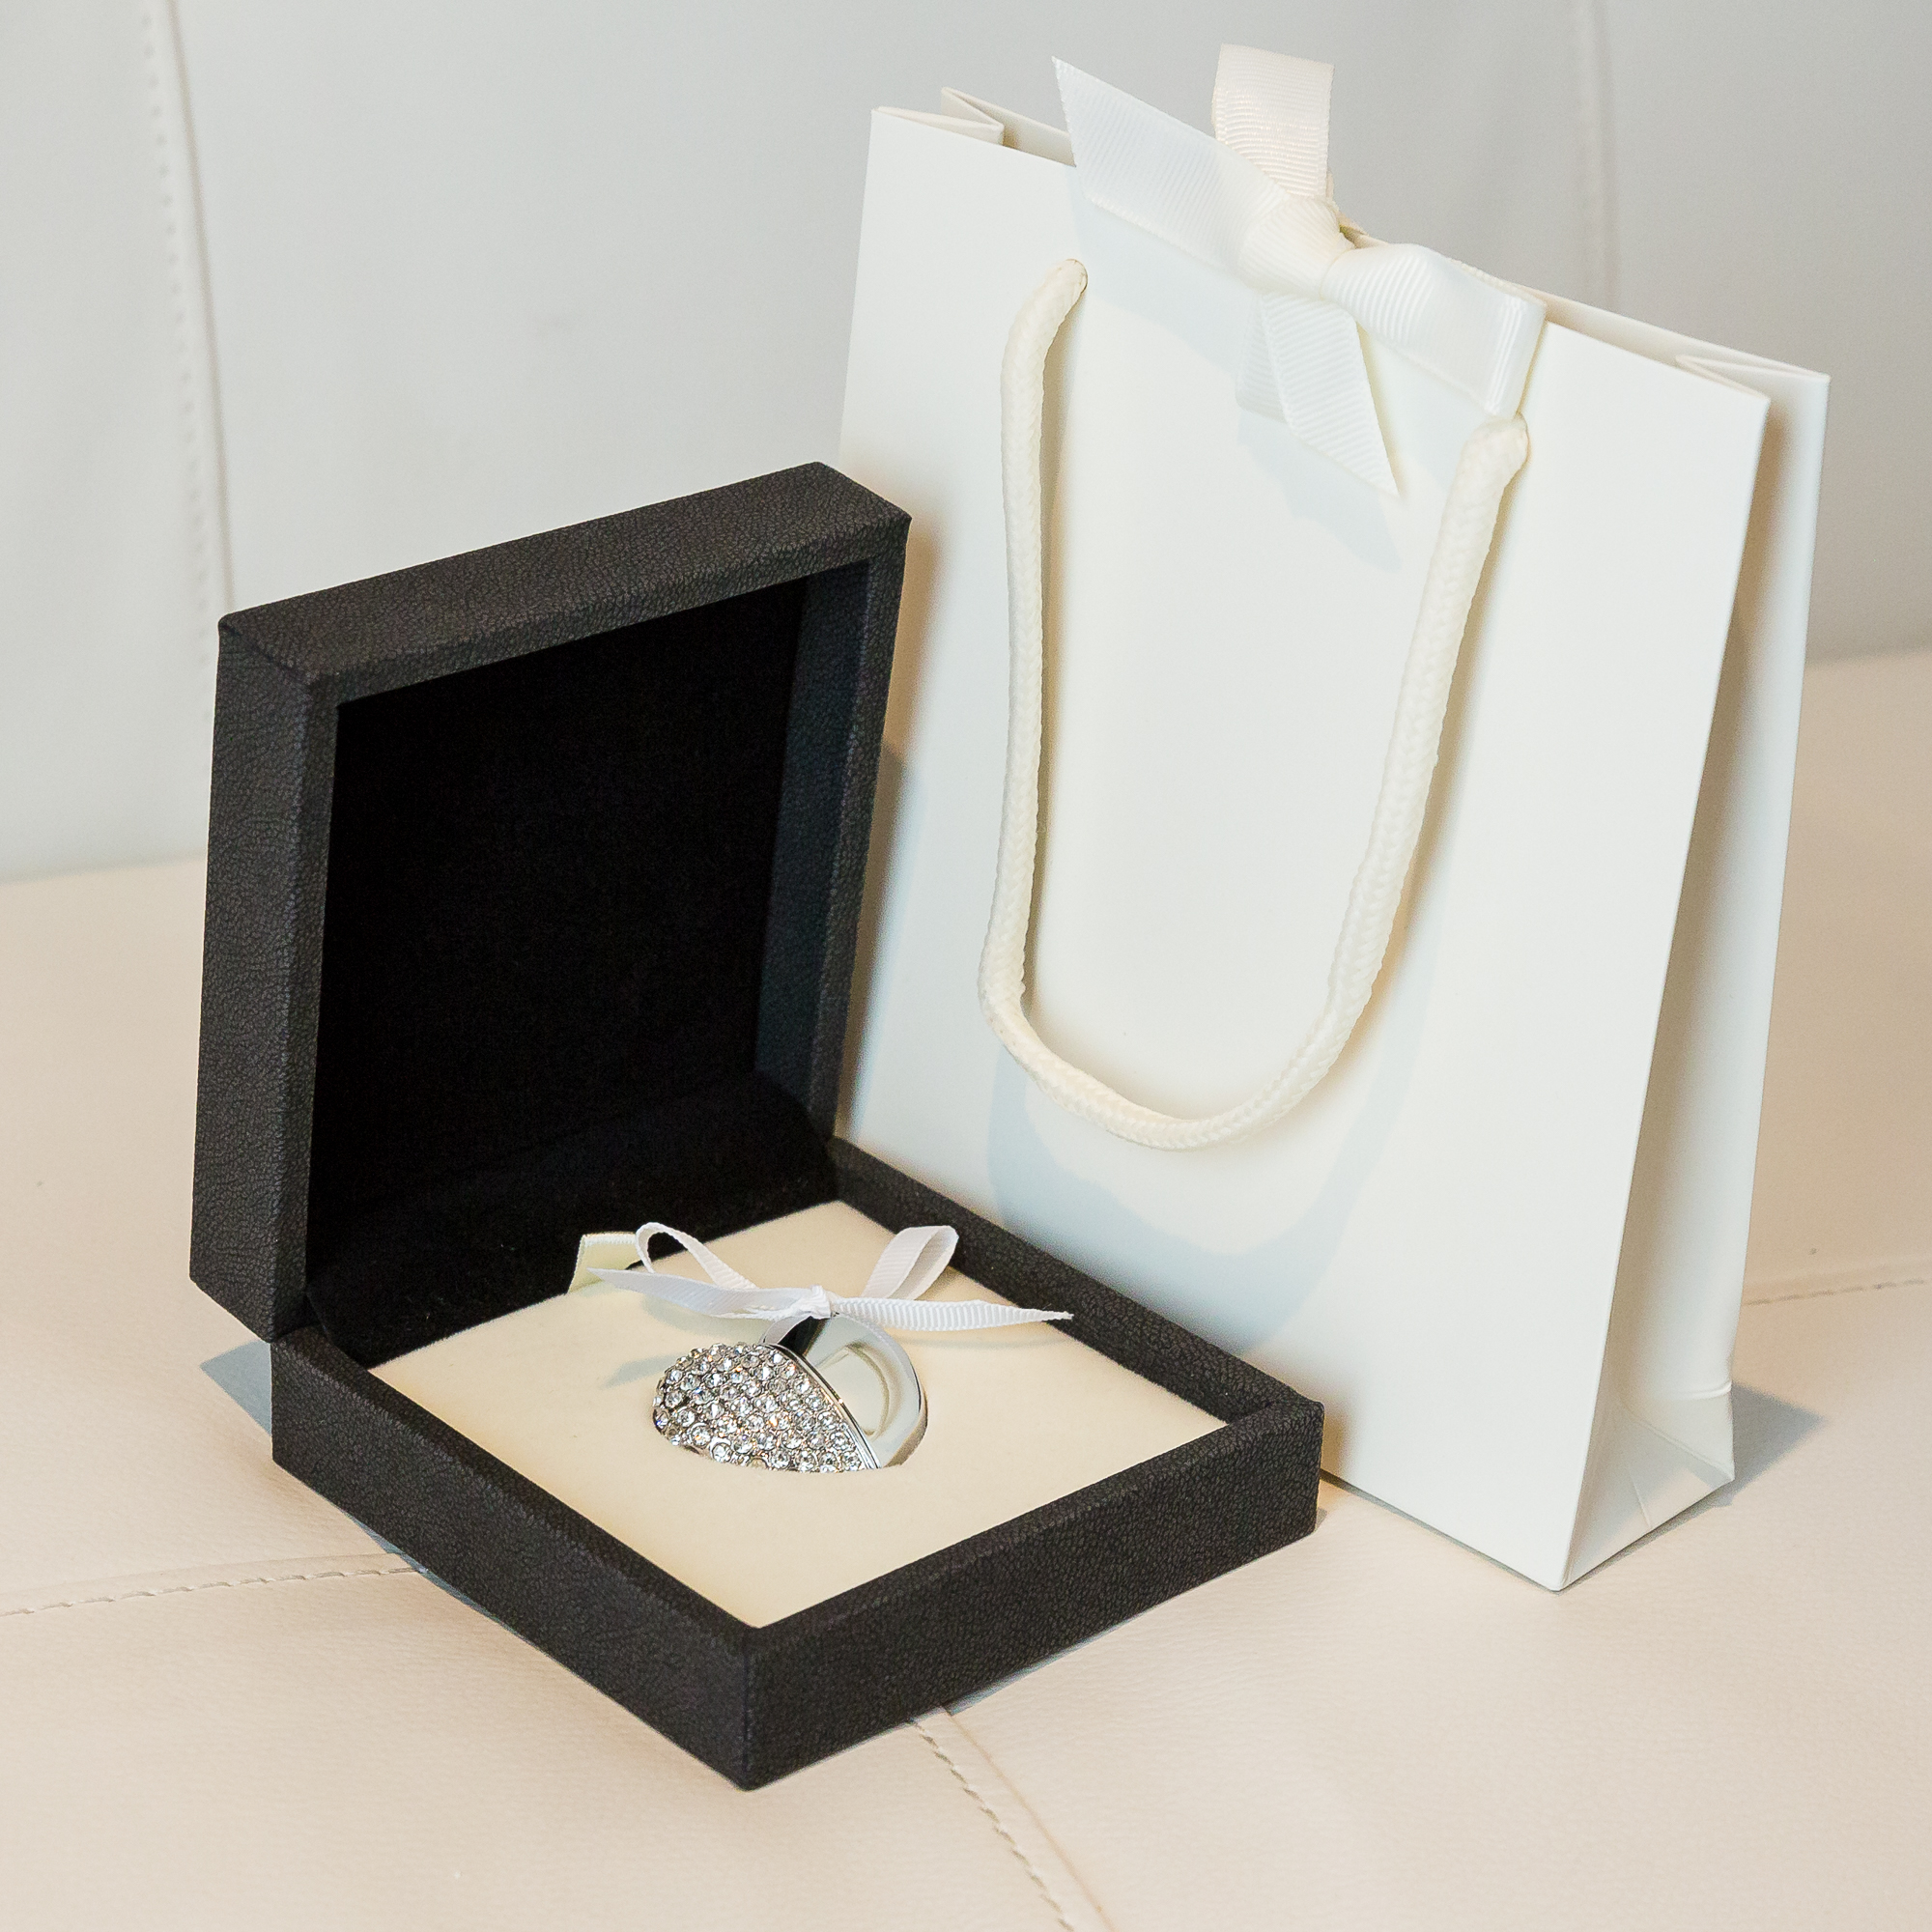 This beautiful Crystal Heart shaped USB comes with your Folio Keepsake Box collection for storage of your digital images.  yourfamilydeservethis.com